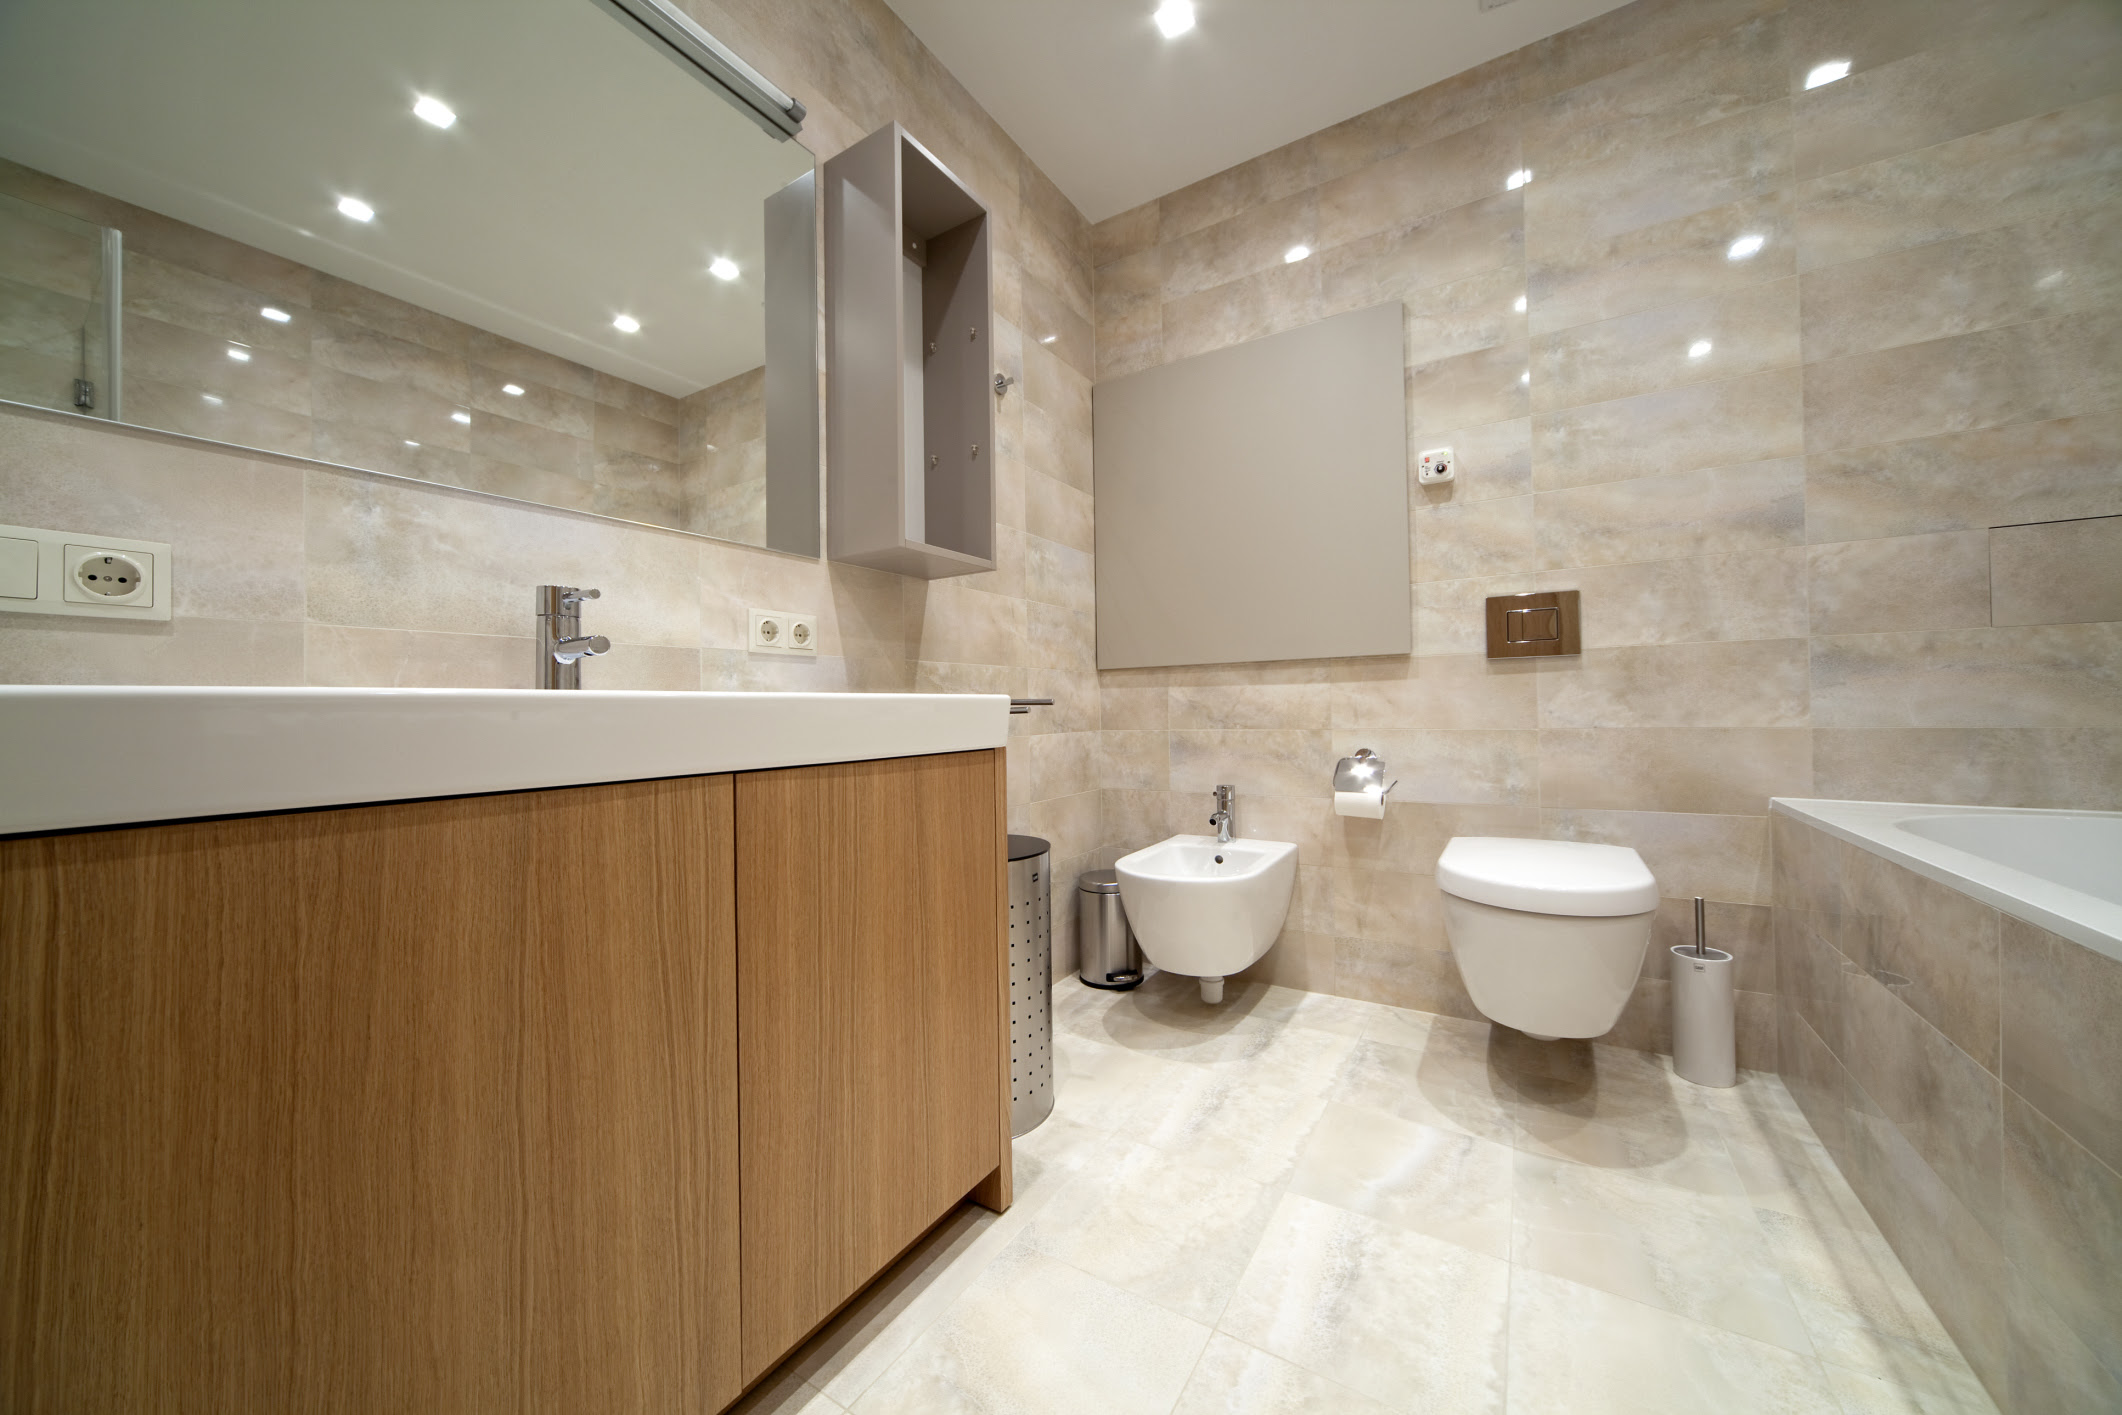 Remodel your bathroom despite being on a tight budget ...